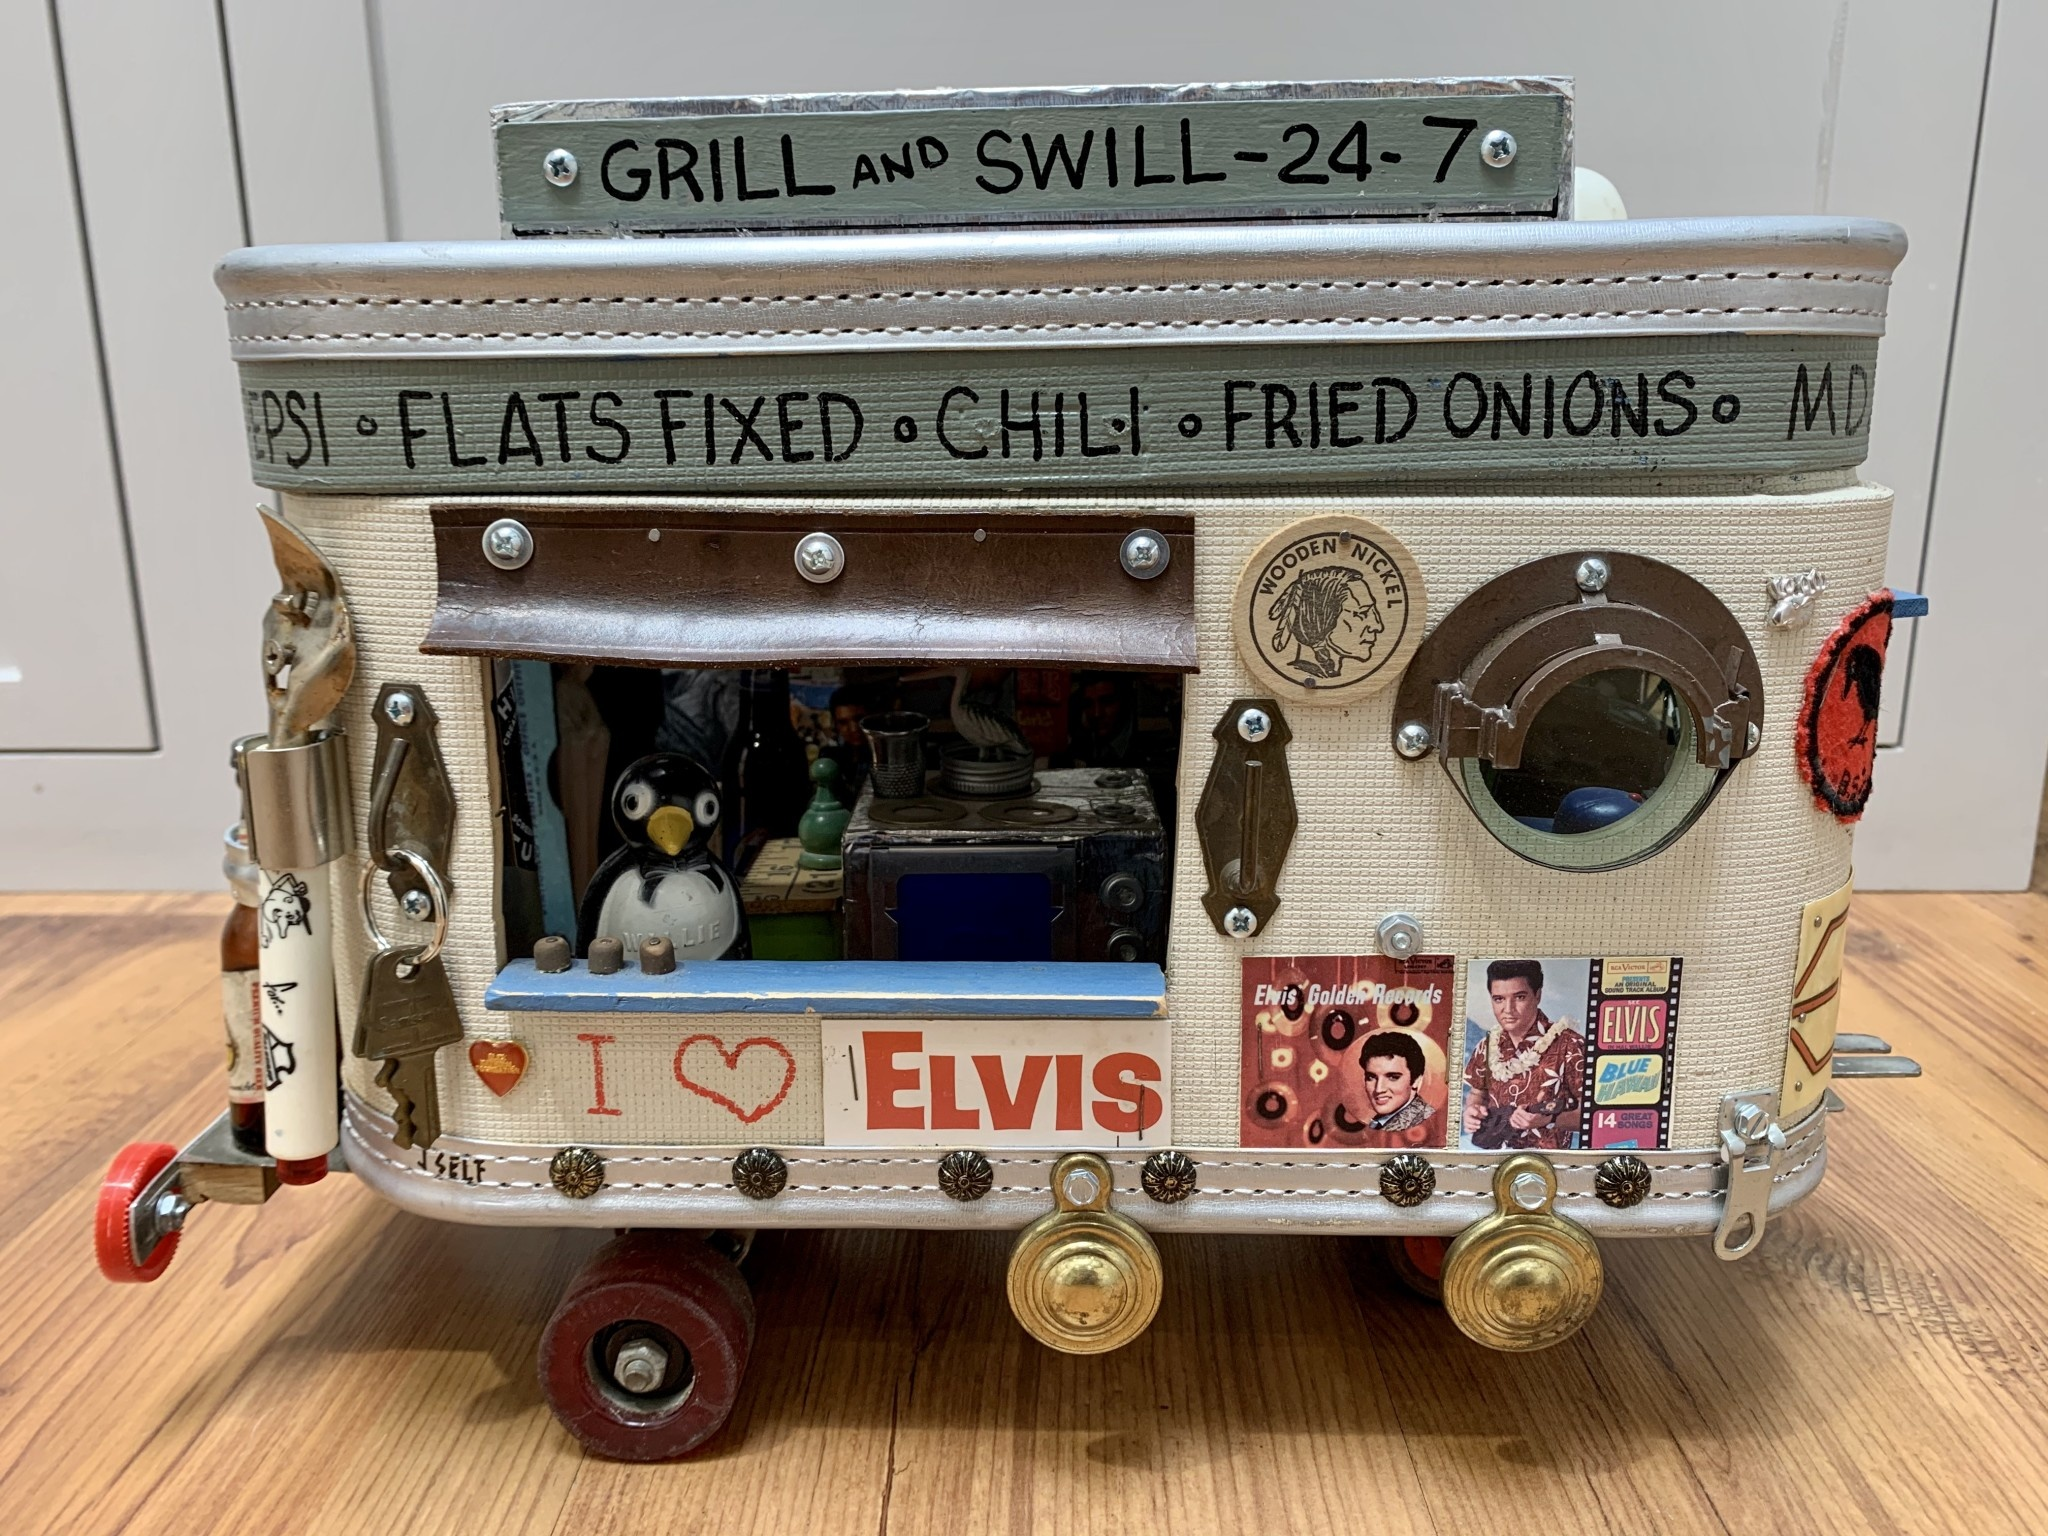 Grill and Swill